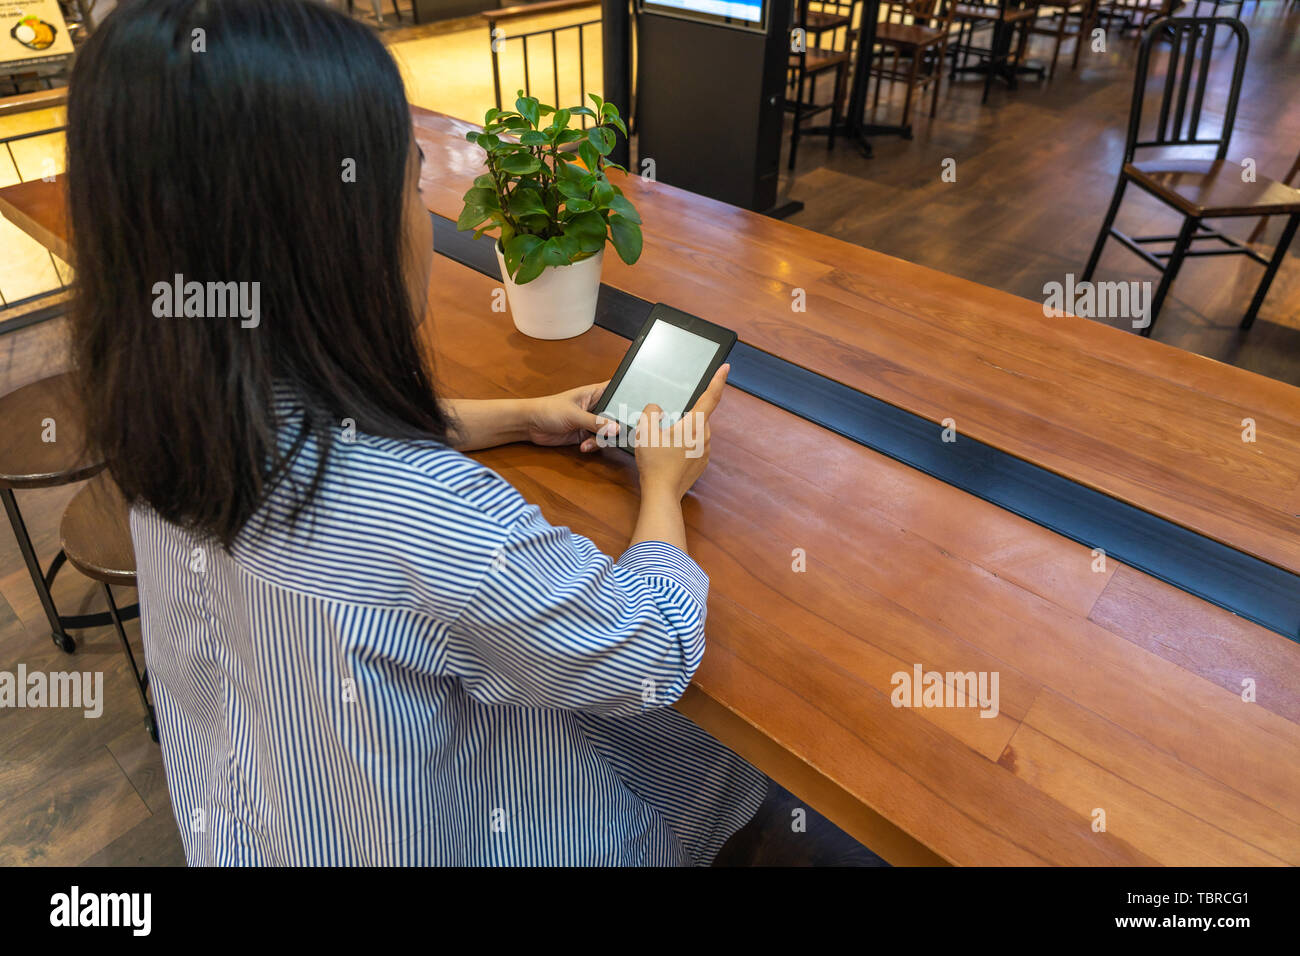 Woman focus on reading ebook with tablet on hands - Stock Image